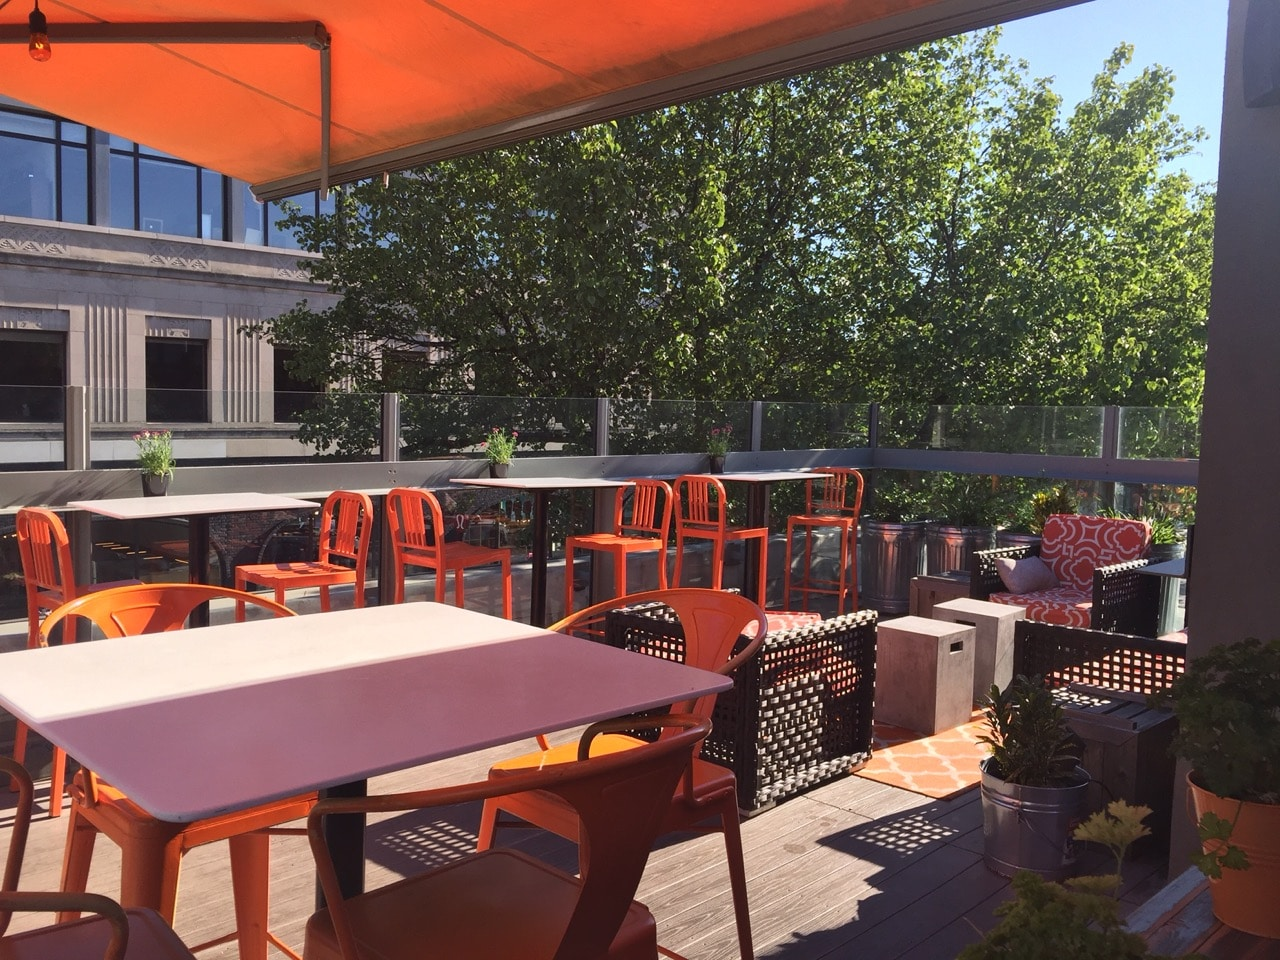 Looking For A Rooftop Patio In Oakland County? Social Kitchen Is The Place  To Be